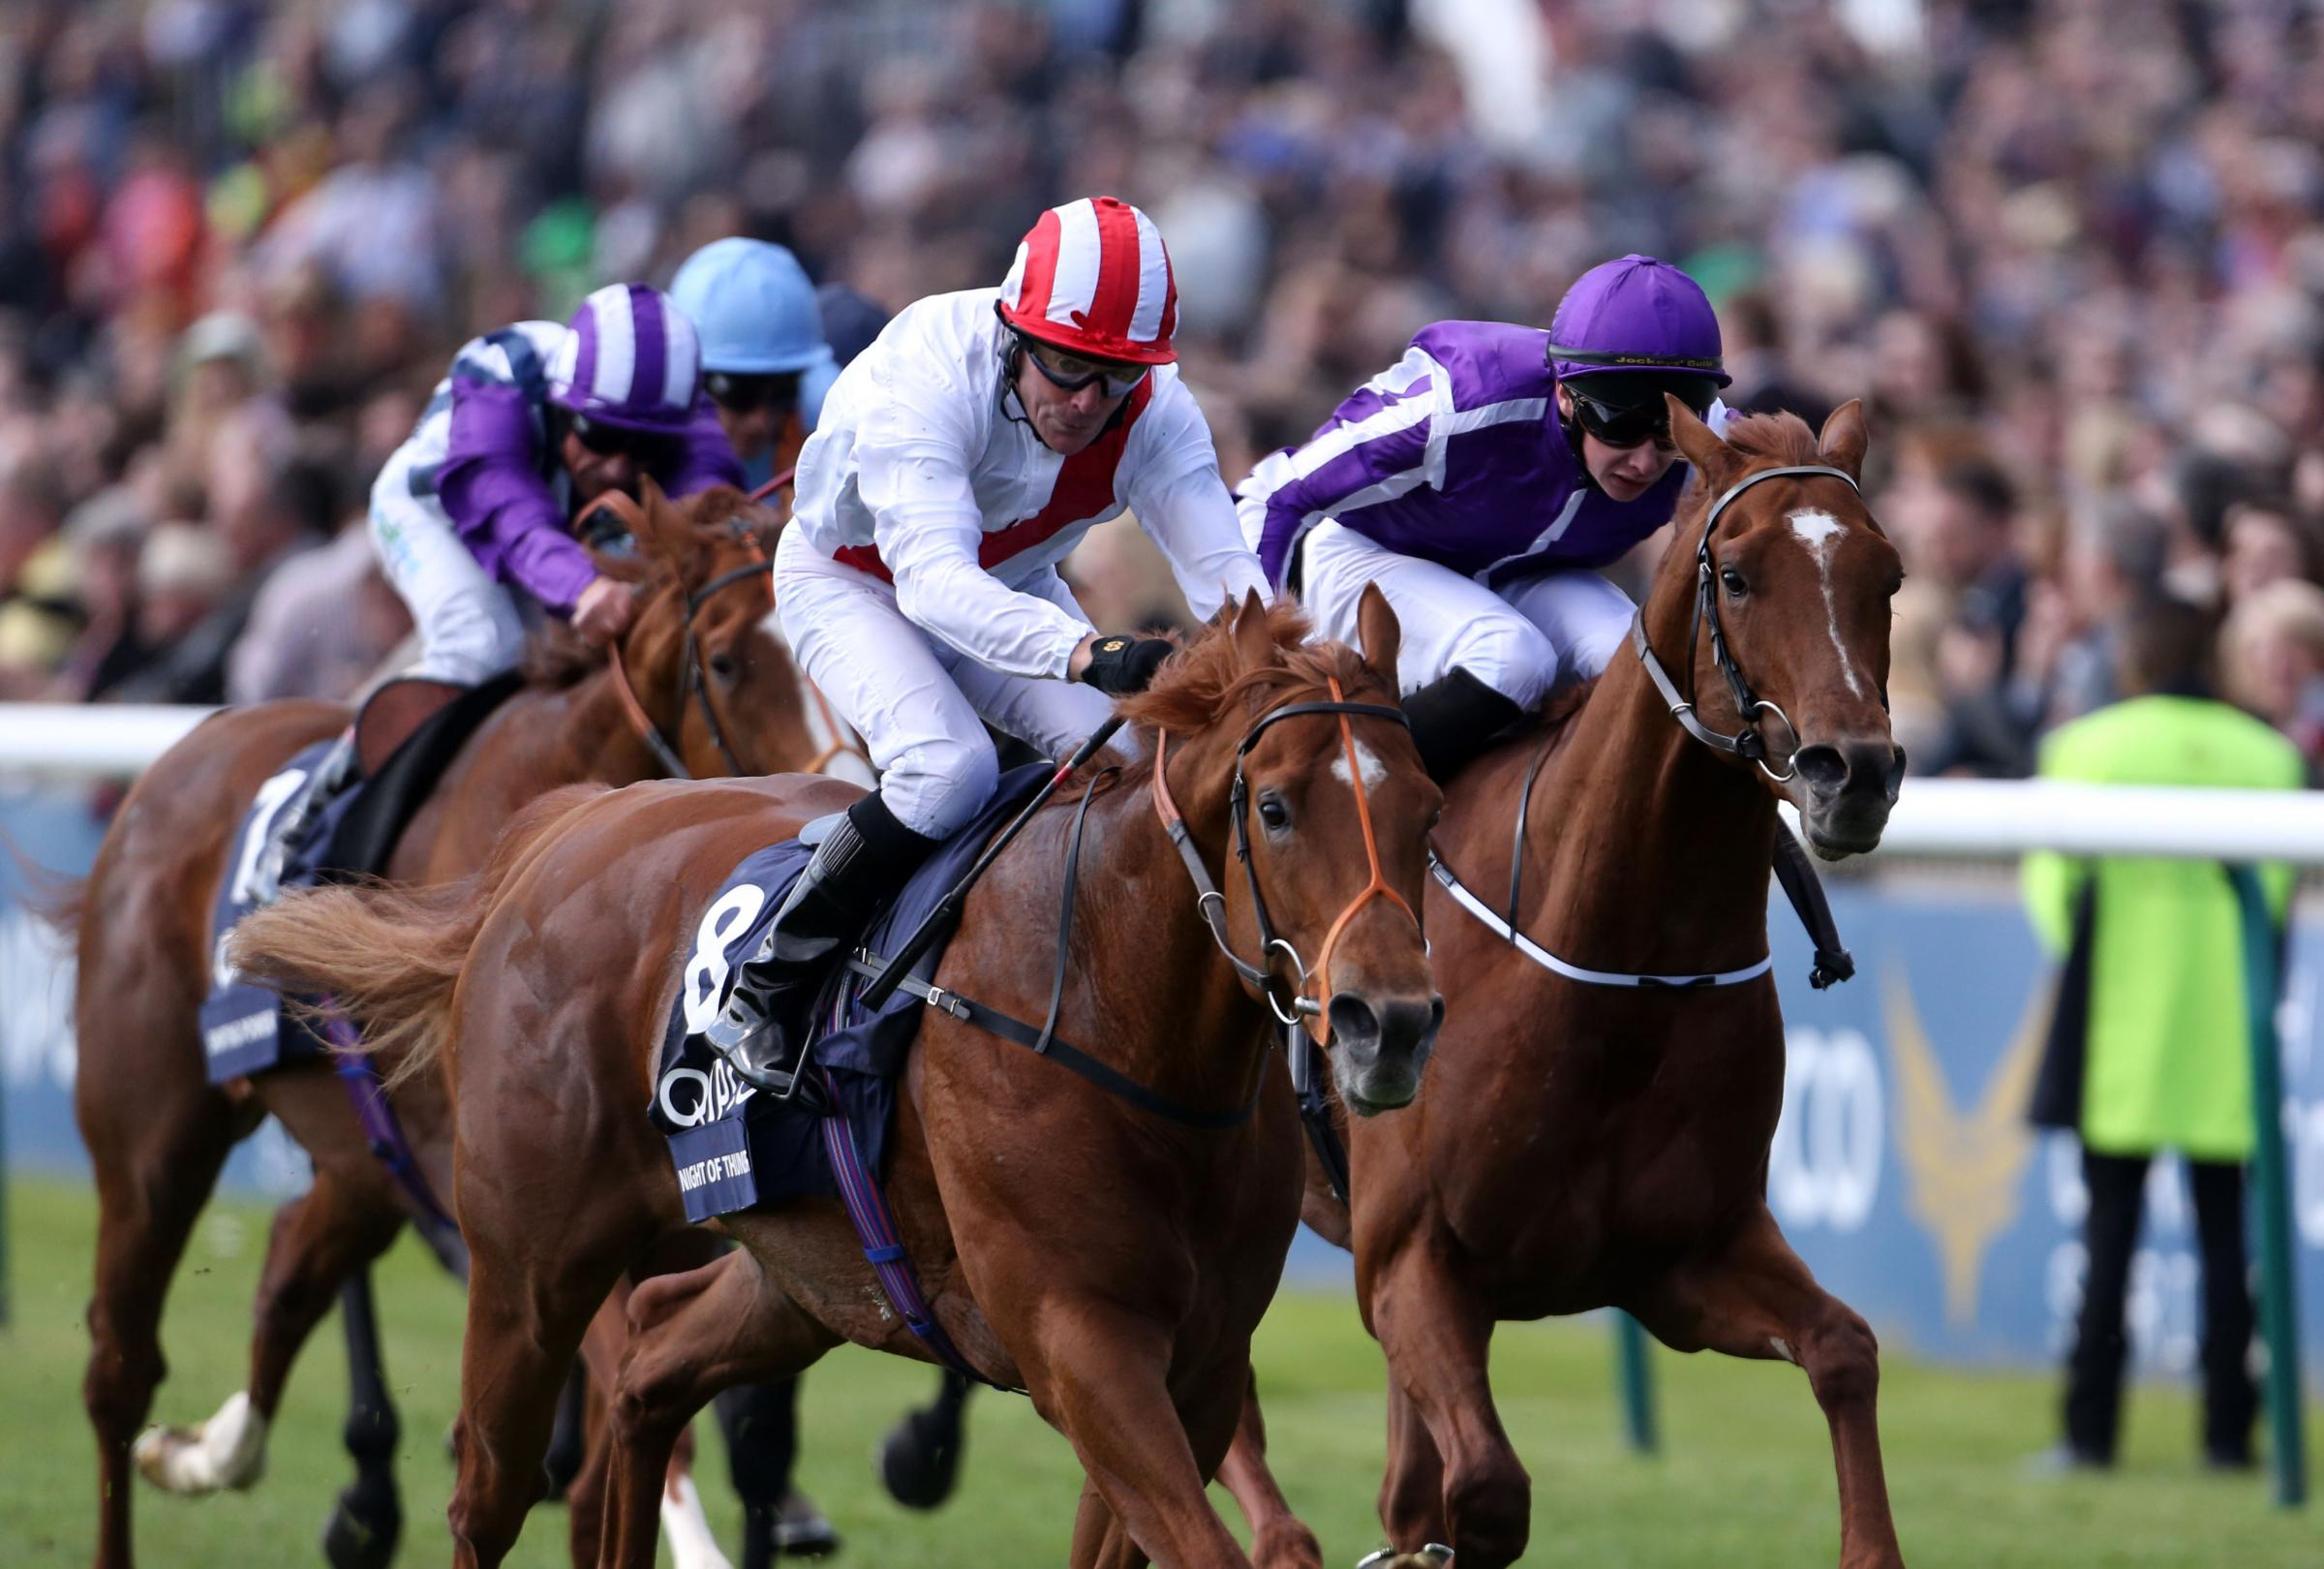 Night of Thunder (left) ridden by Kieren Fallon wins the Qipco 2000 Guineas for Wiltshire trainers Richard Hannon